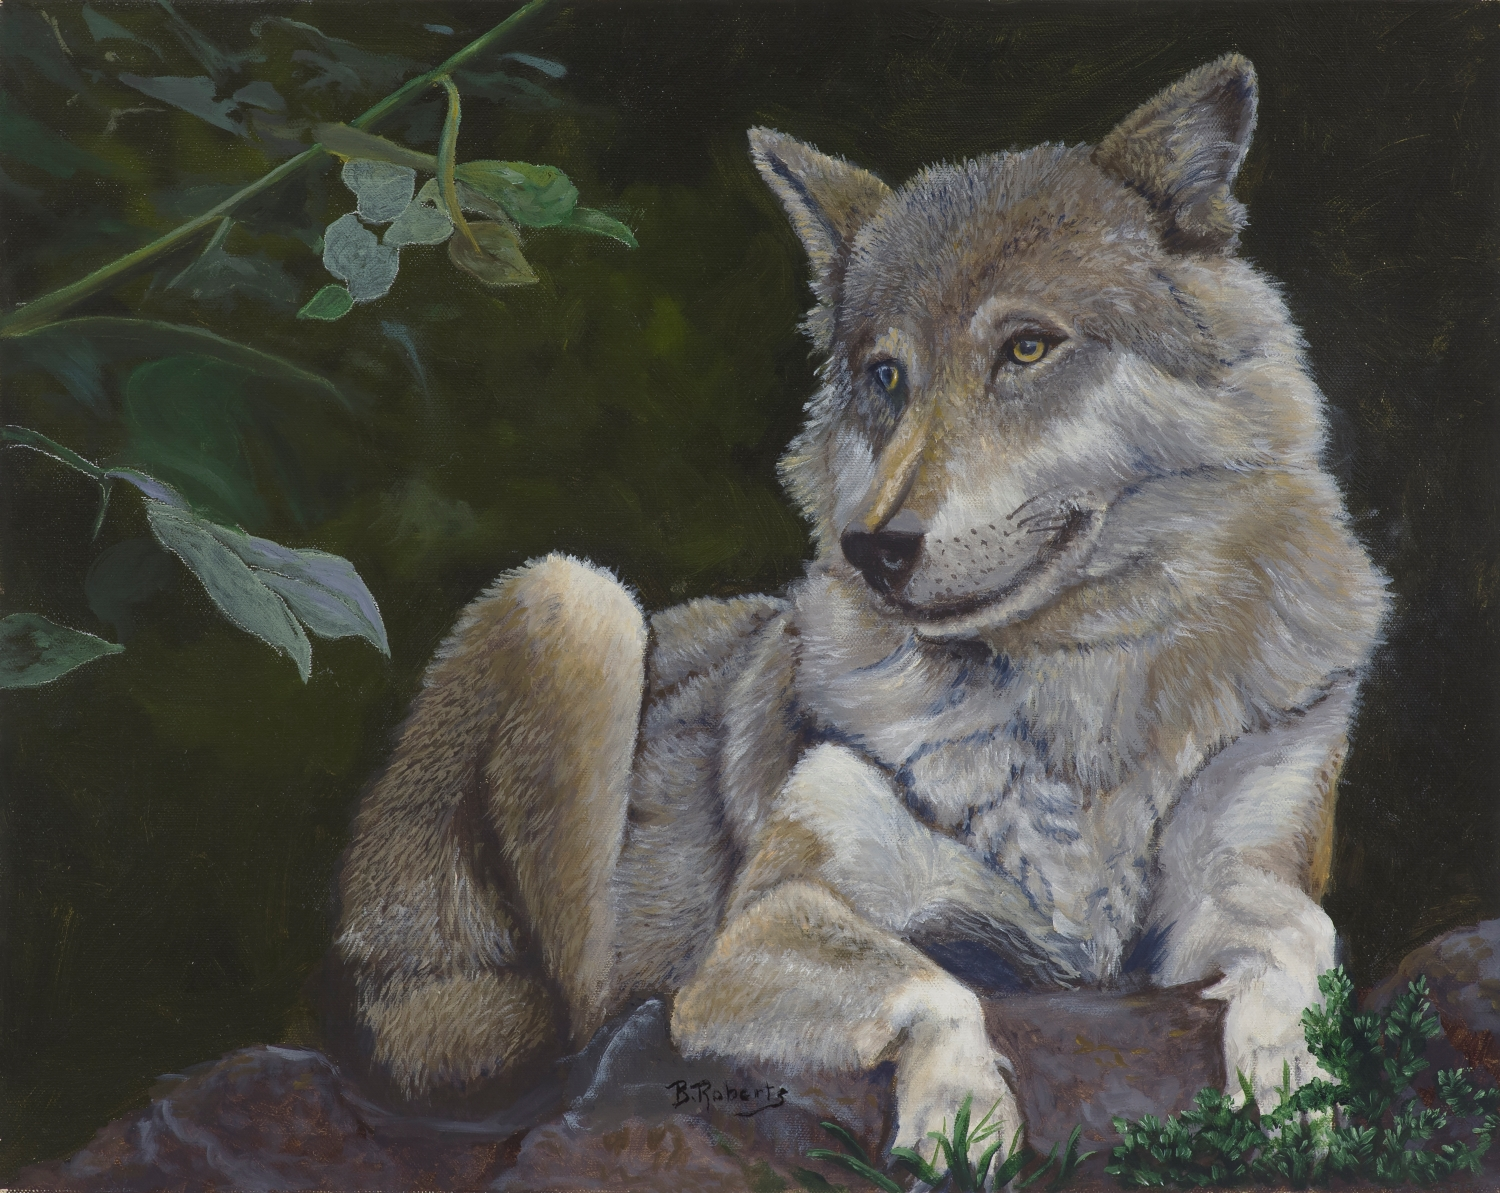 """MOTHER WOLF KICKS BACK"", Oil on Canvas, 16x20 inches (unframed), $850"